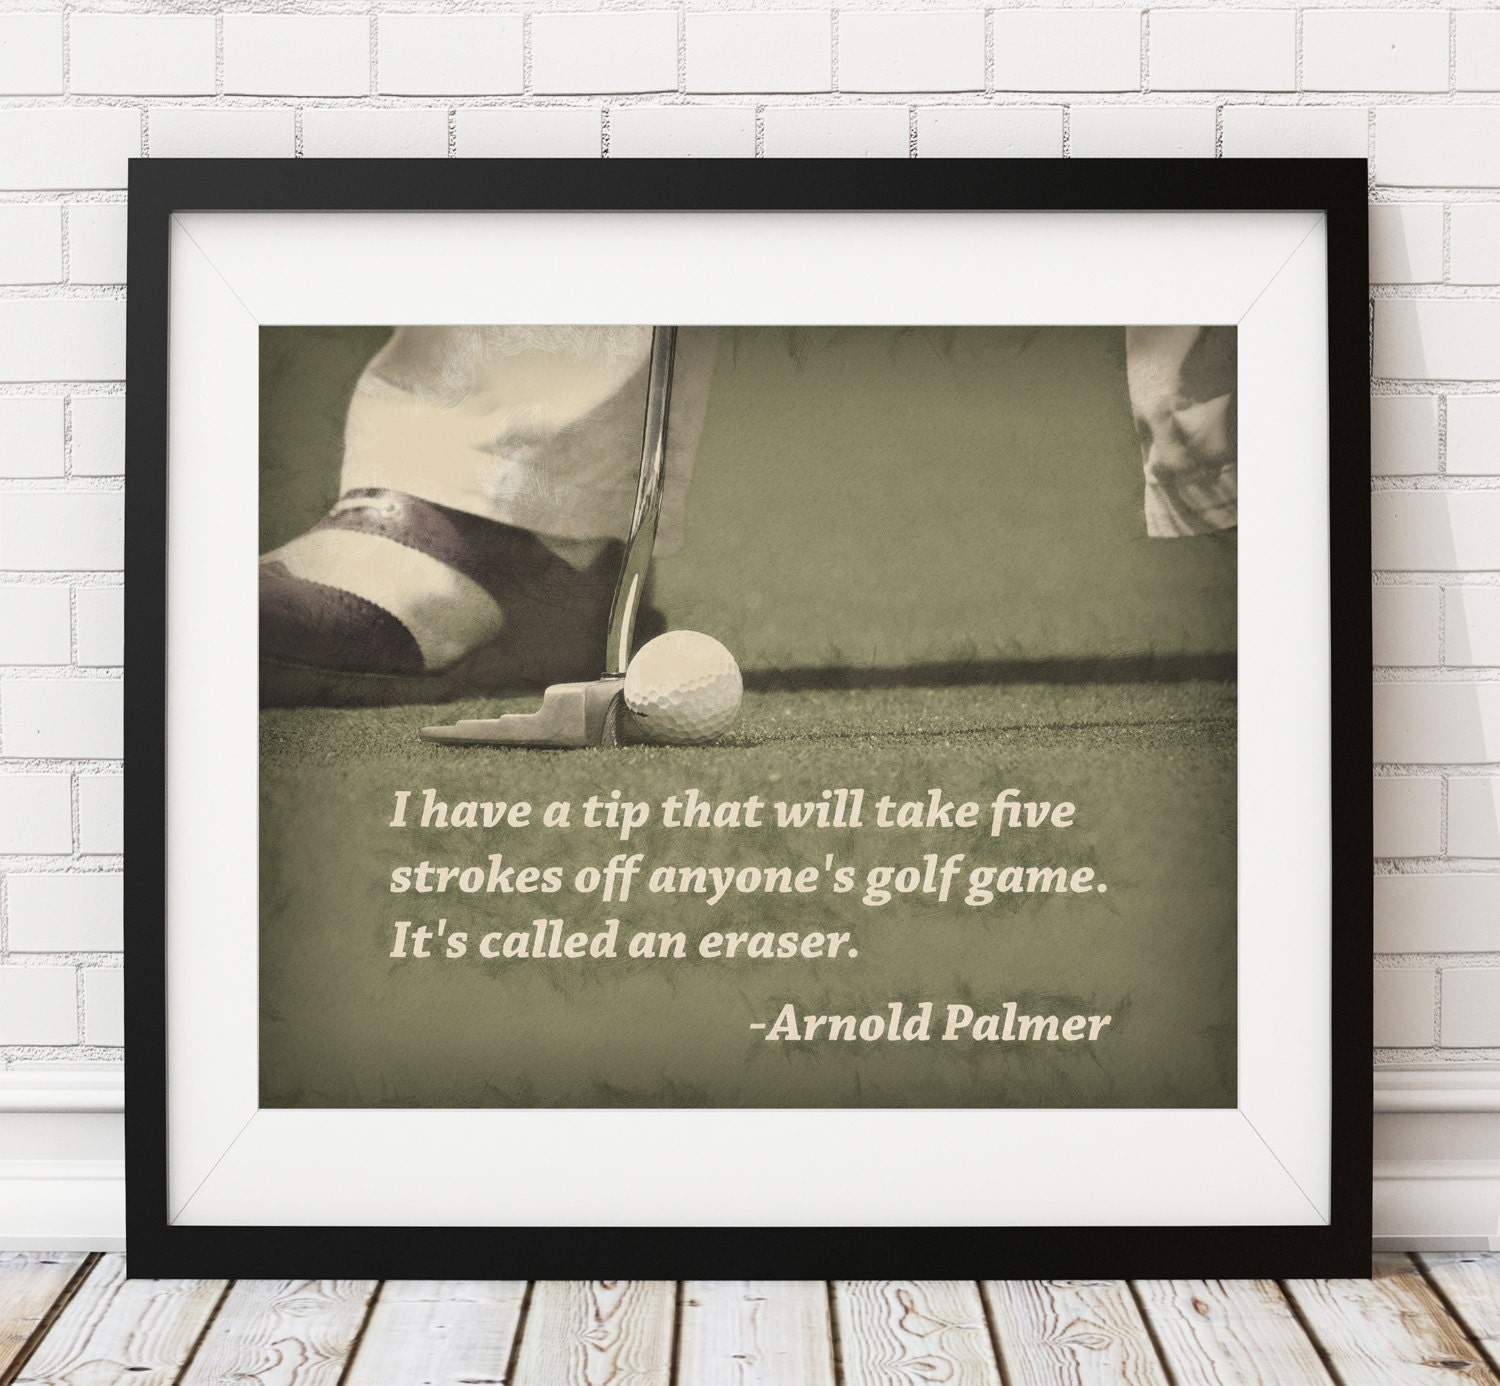 Delightful Golf Print, Golf Art, Arnold Palmer Quote, Poster, Home Gym, Golf Decor,  Sports Wall Decor, Man Cave Art, Office Decor, Golf Gifts For Men